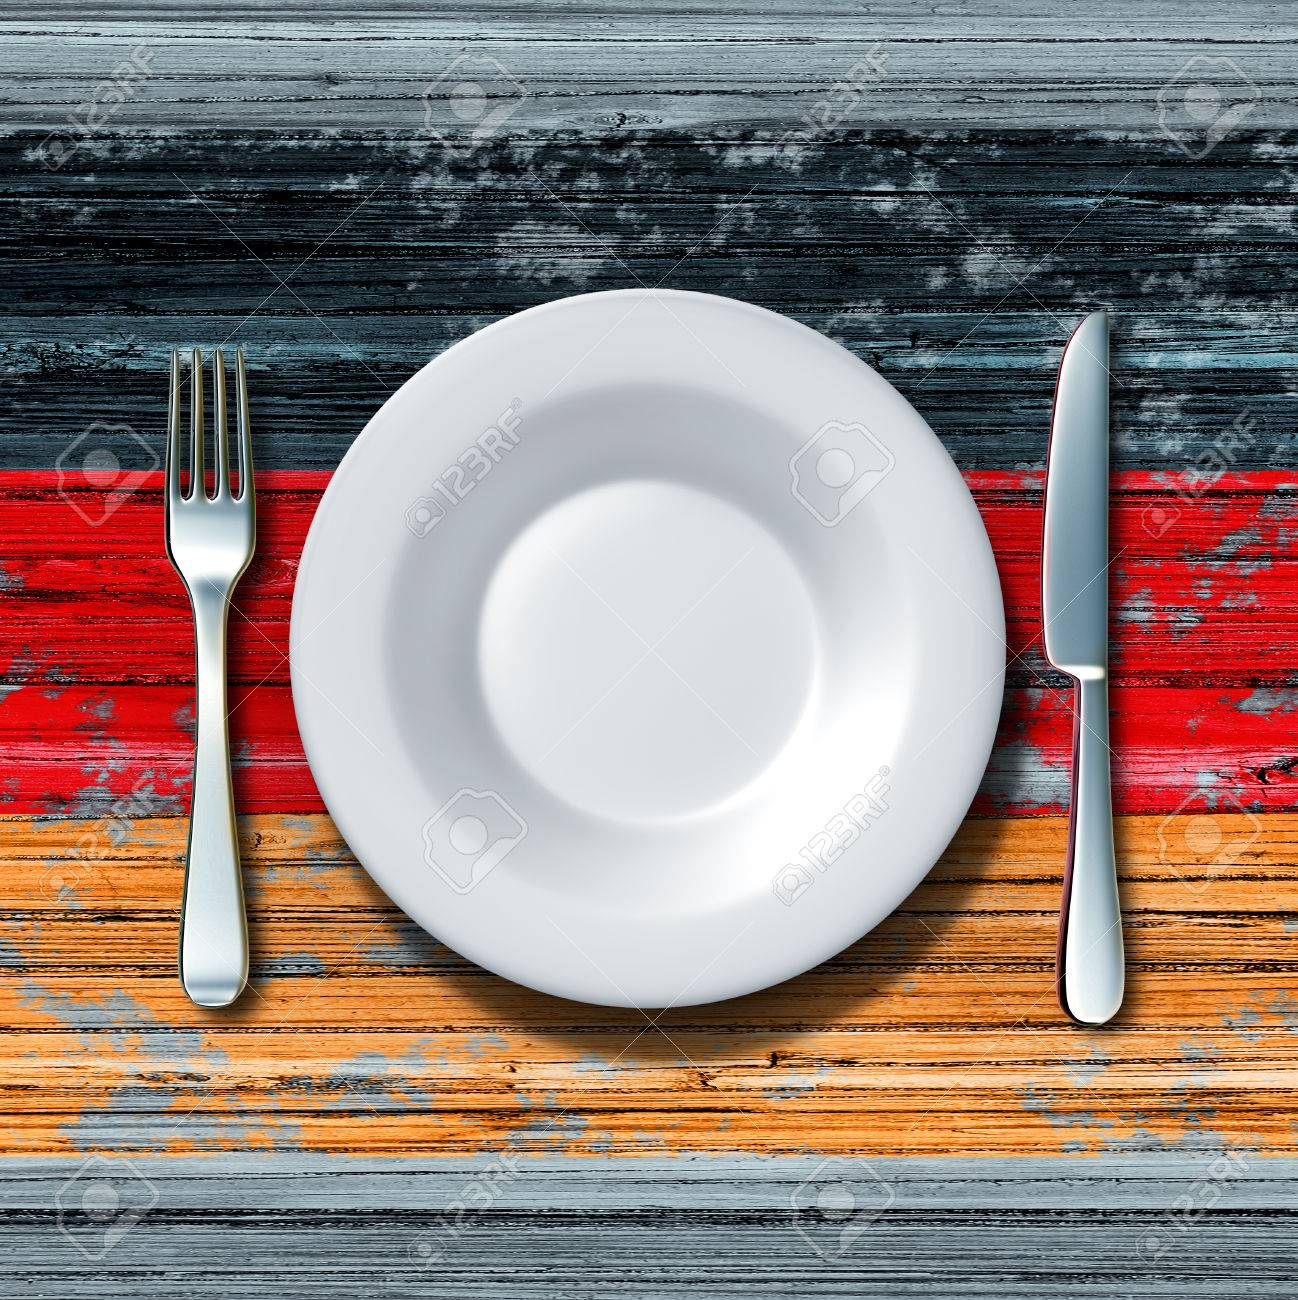 German Cuisine Food Concept As A Place Setting With Knife And ...